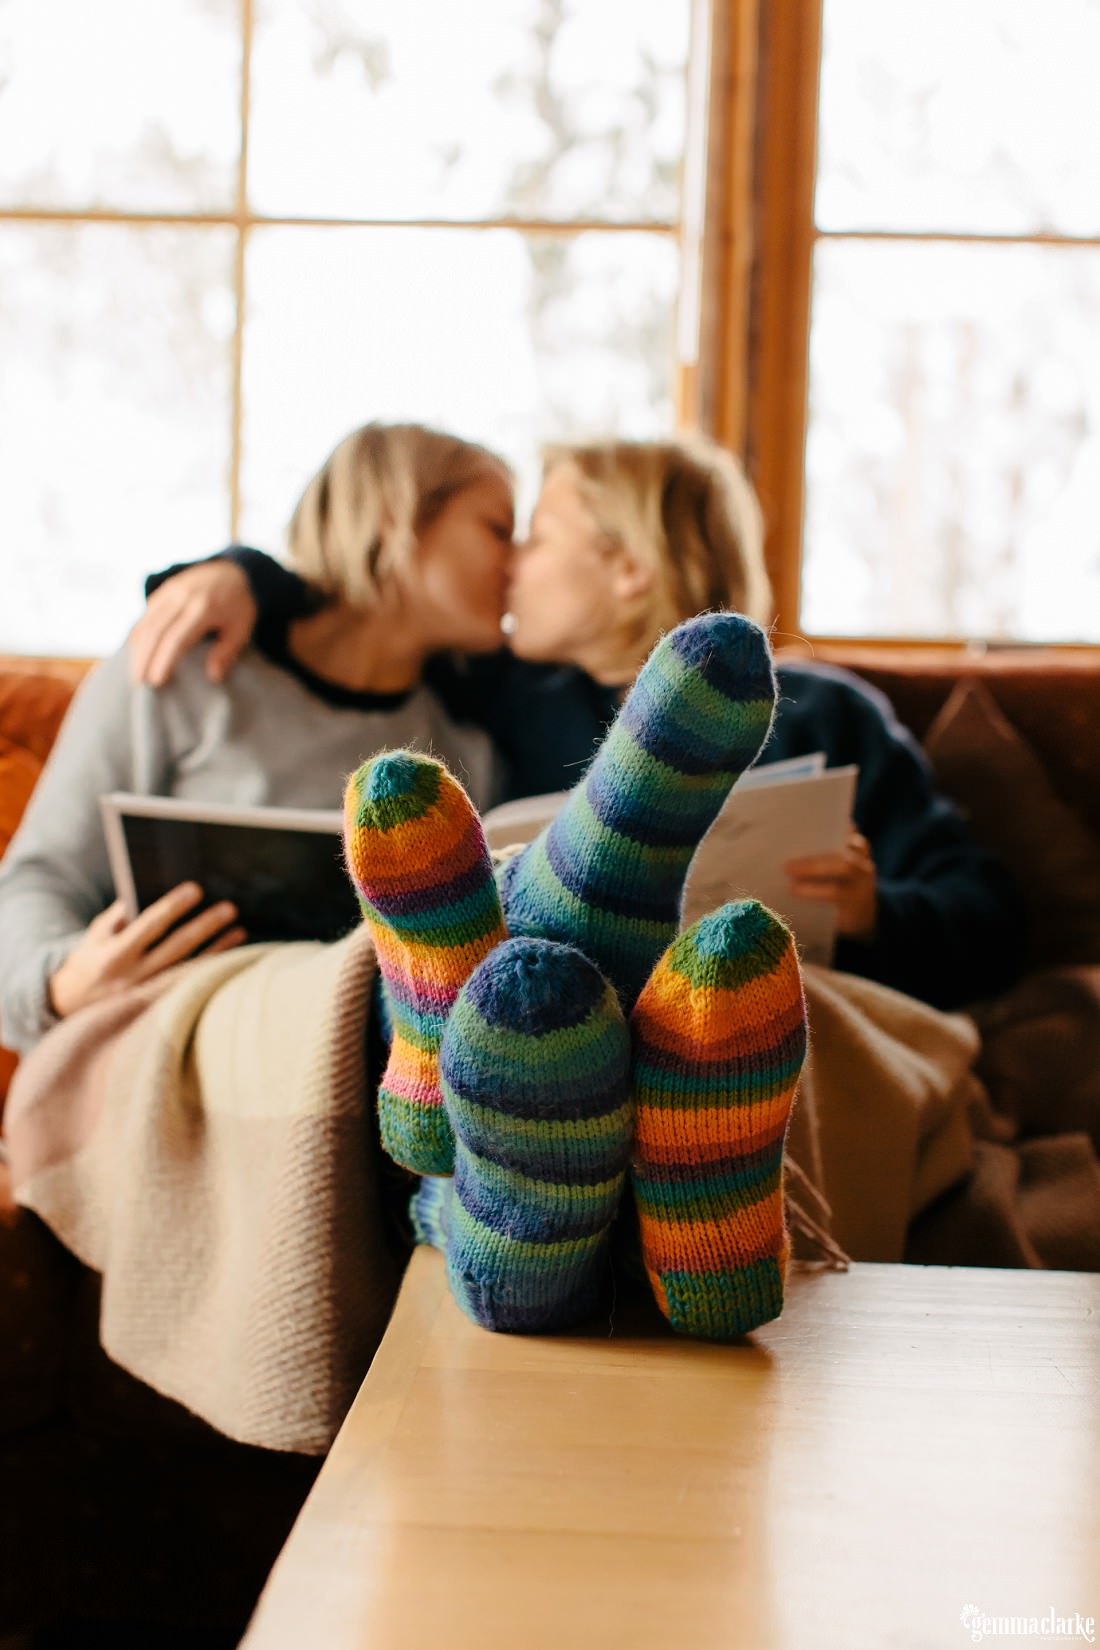 A couple kiss while sitting together in a couch with their feet in colourful stripey socks are entwined on a table